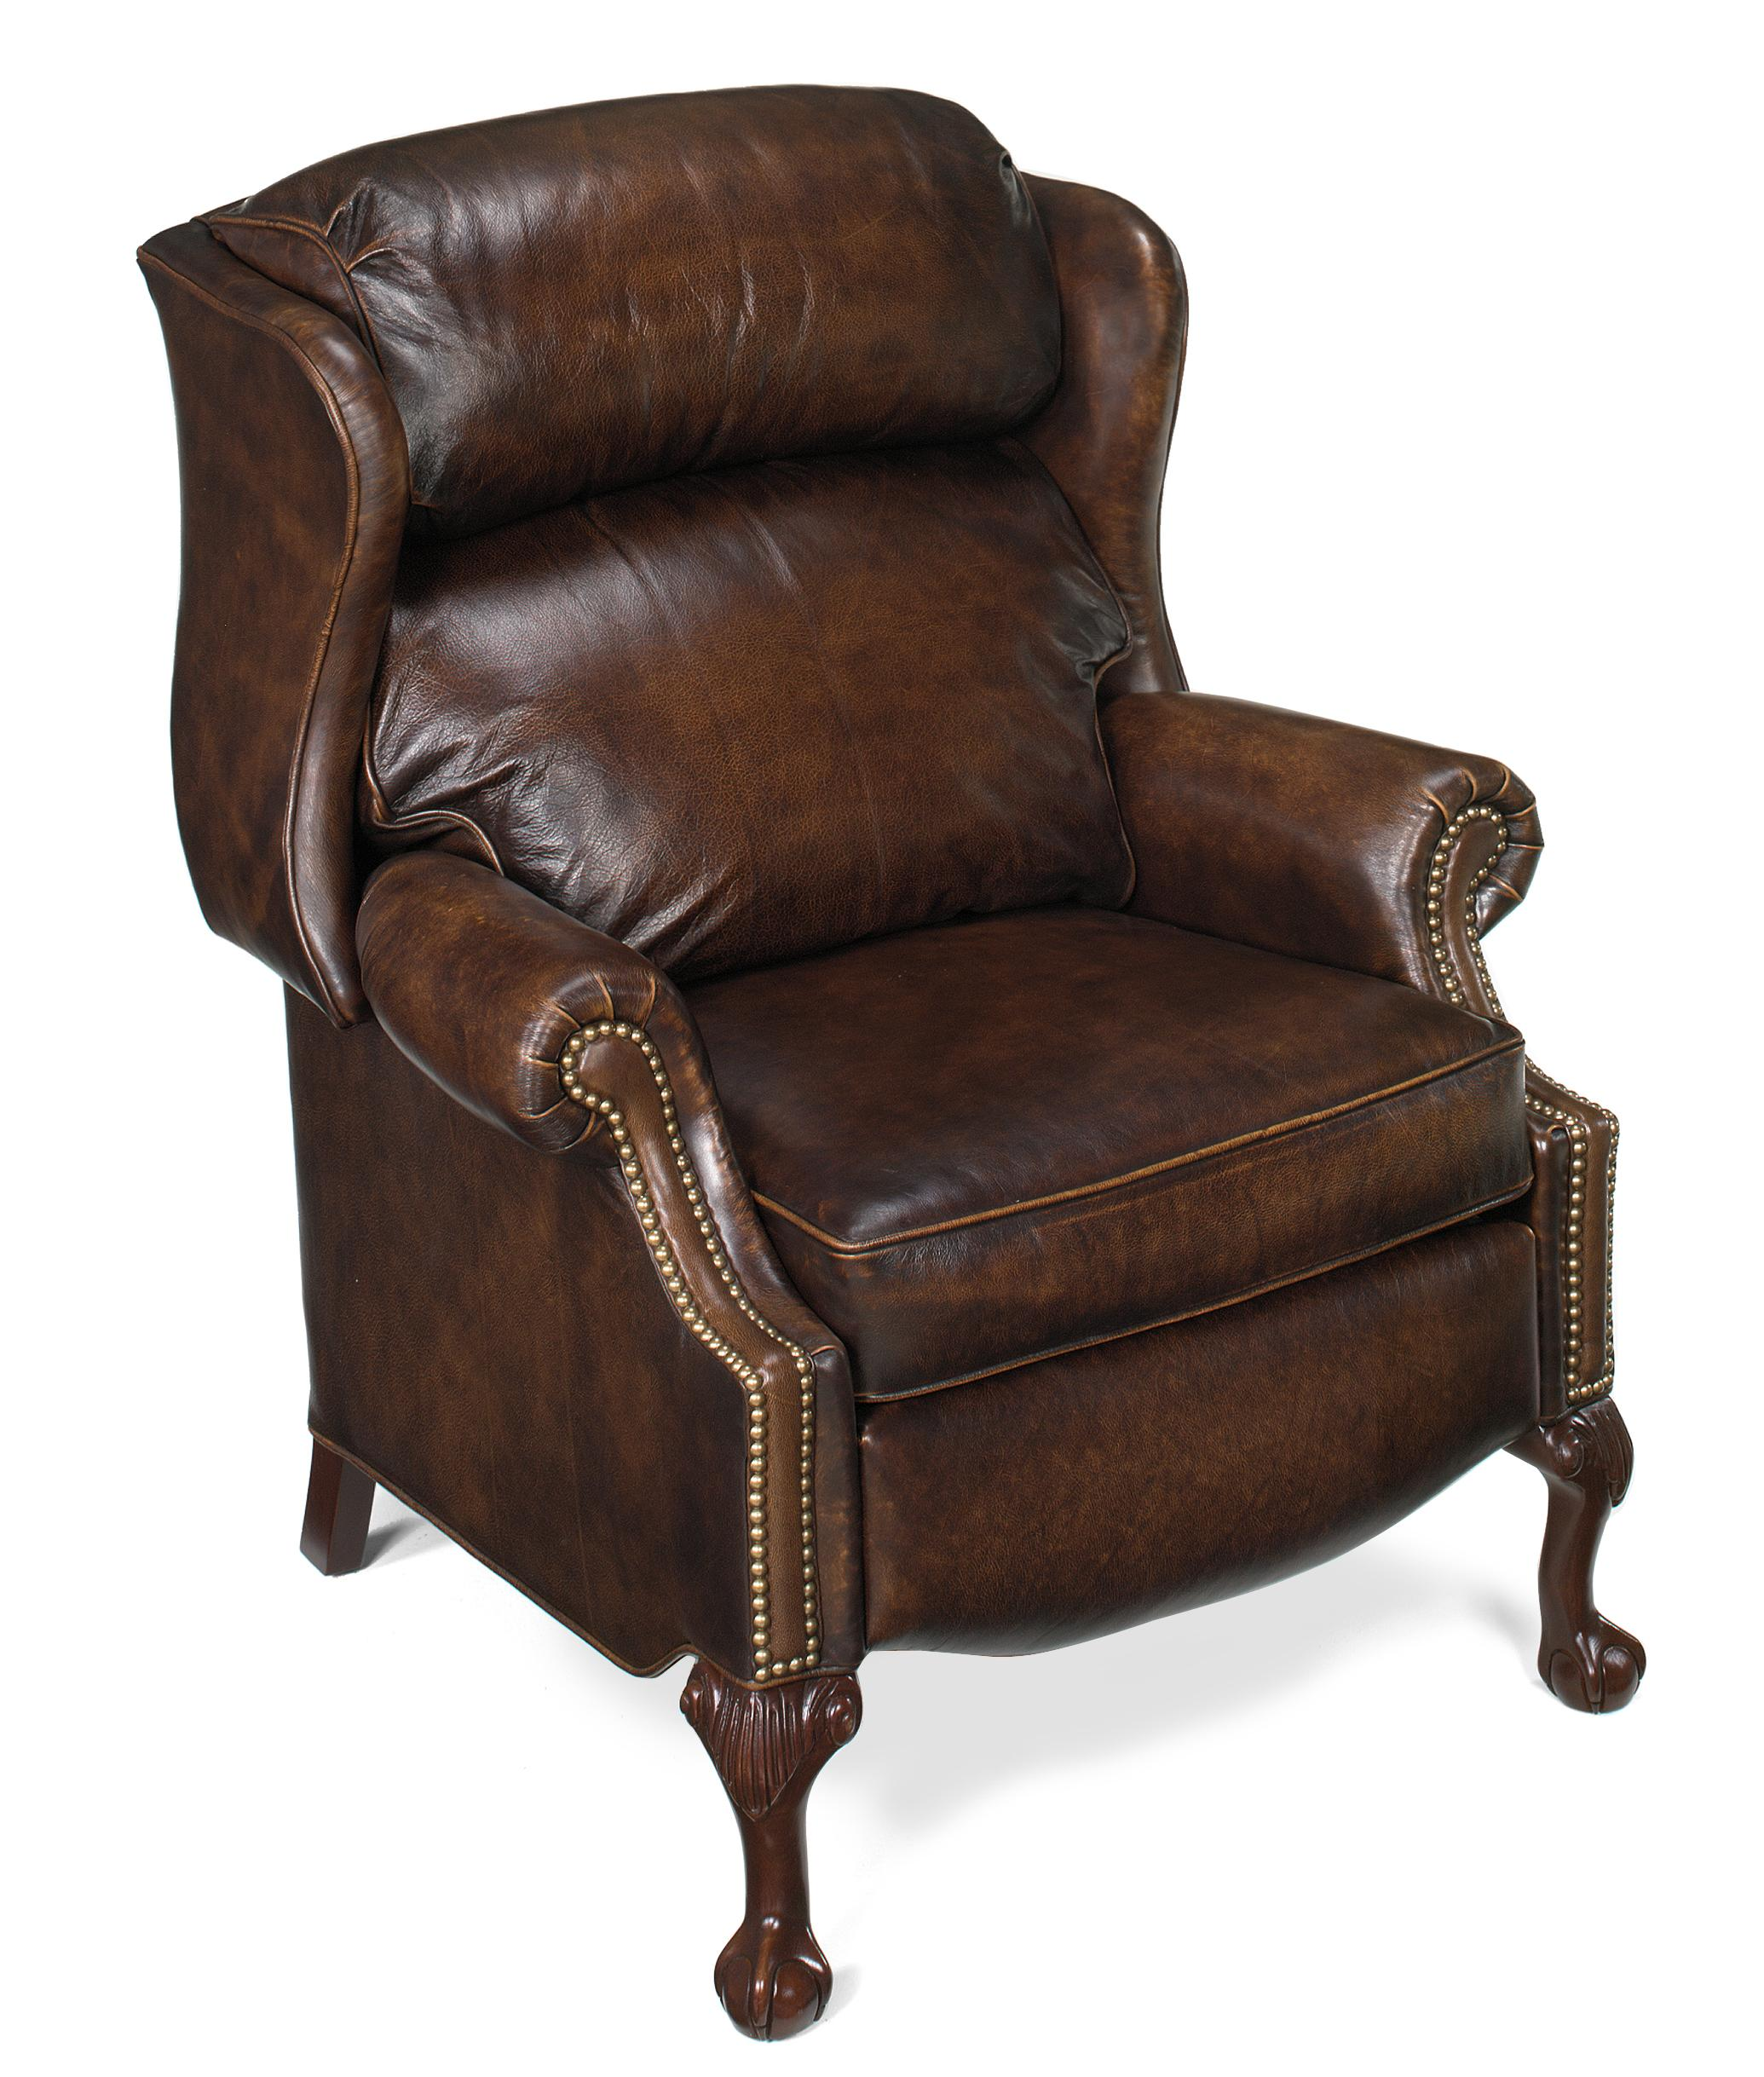 reclining wingback chair best type of after back surgery bradington young chairs that recline ball and claw power